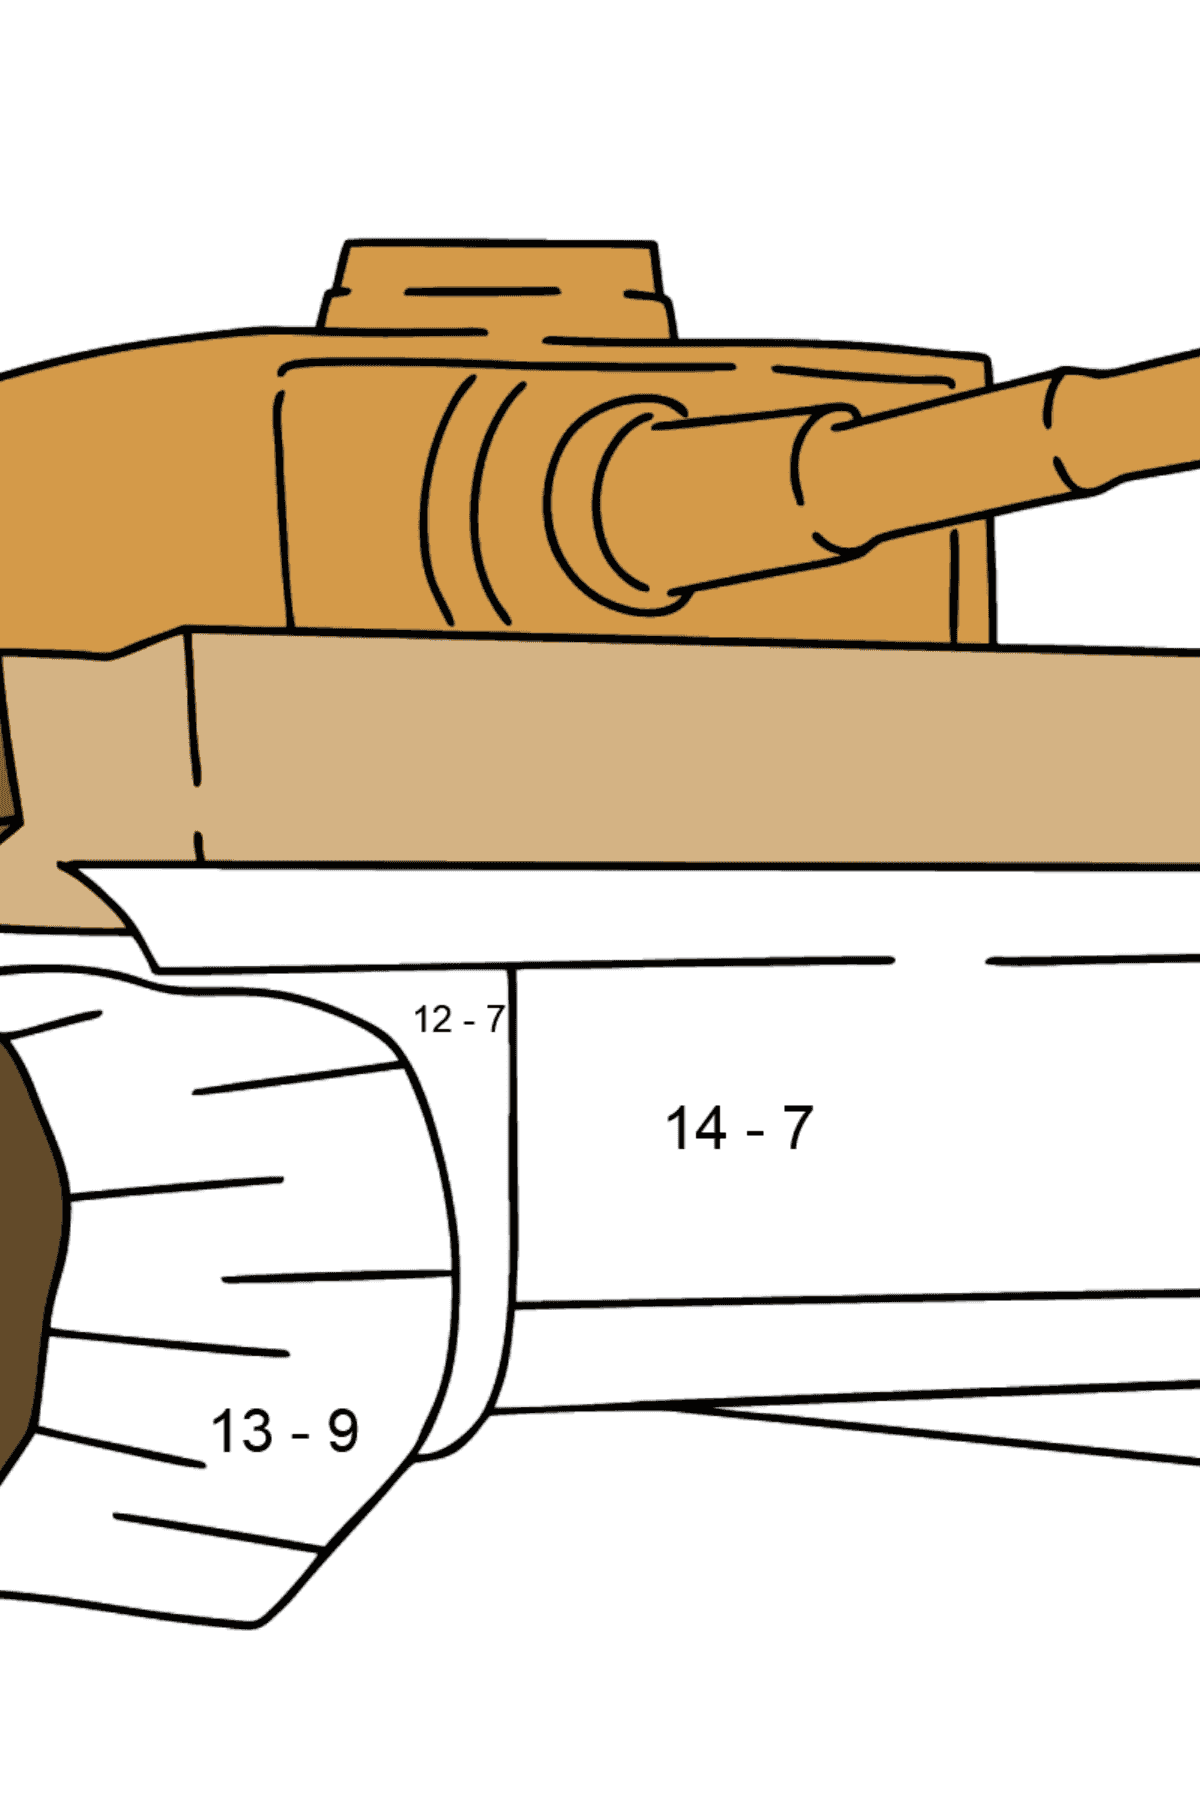 Tank Tiger coloring page - Math Coloring - Subtraction for Kids